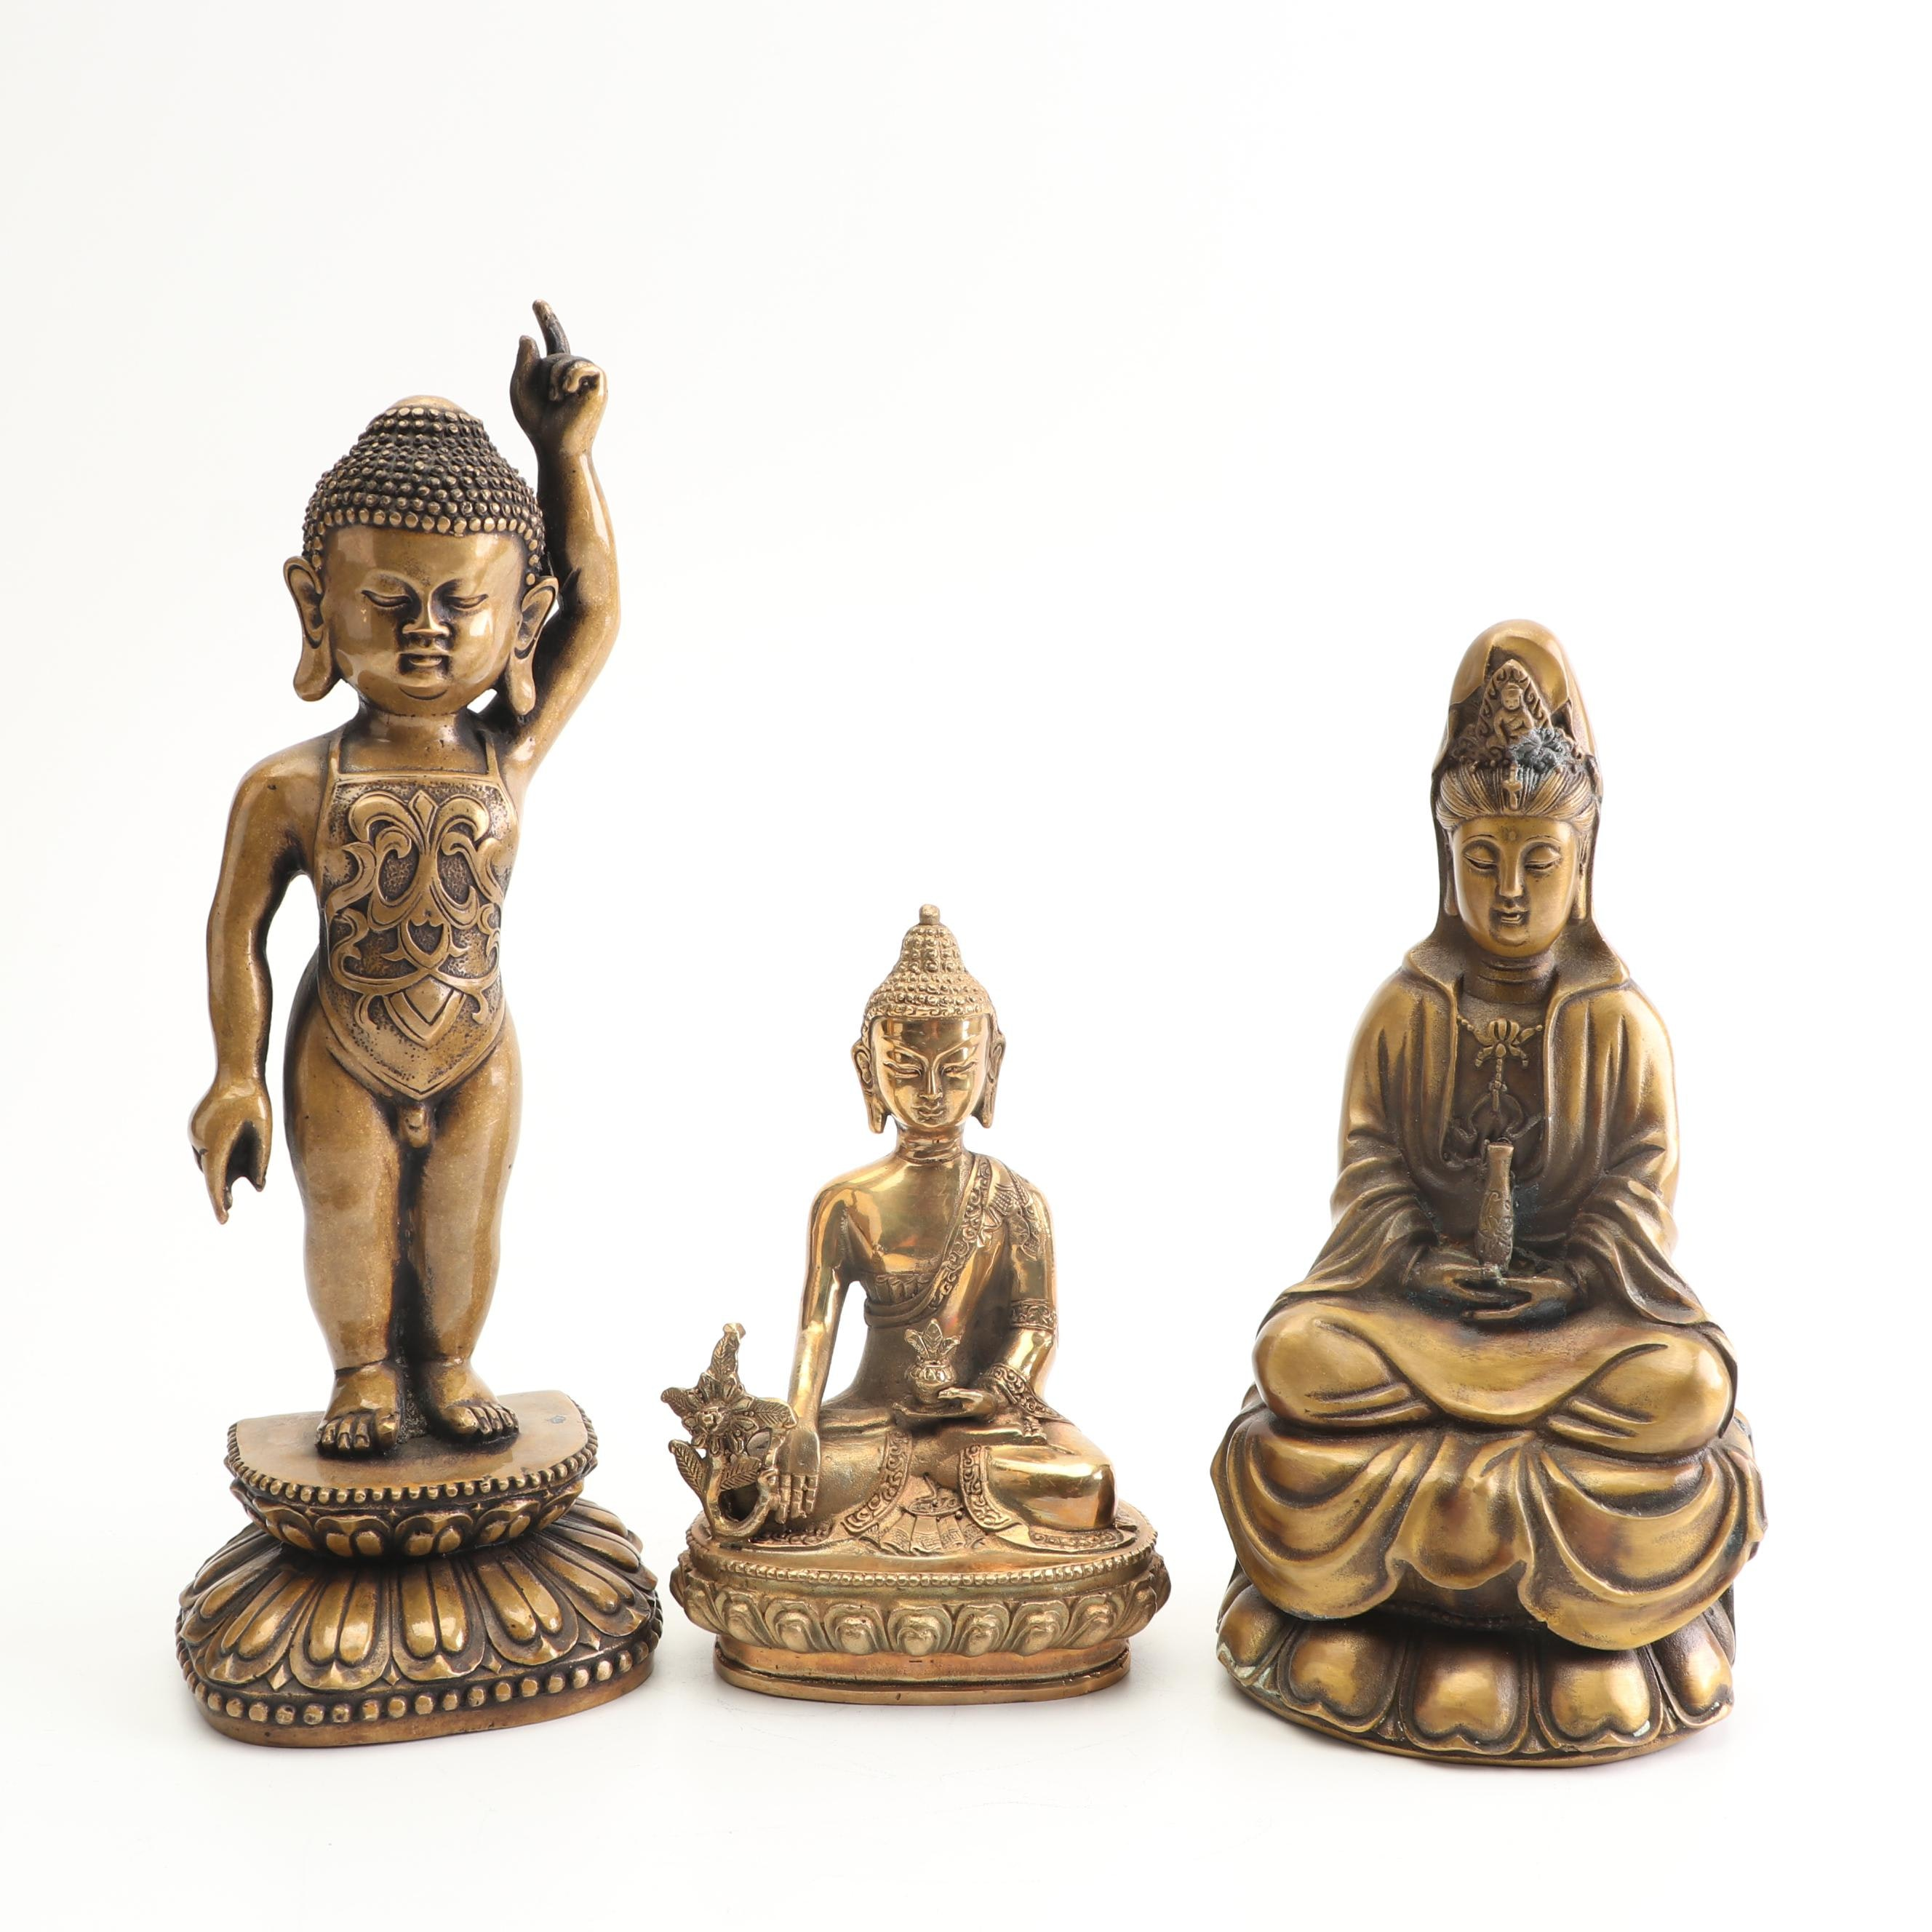 Chinese Brass Religious Figurines